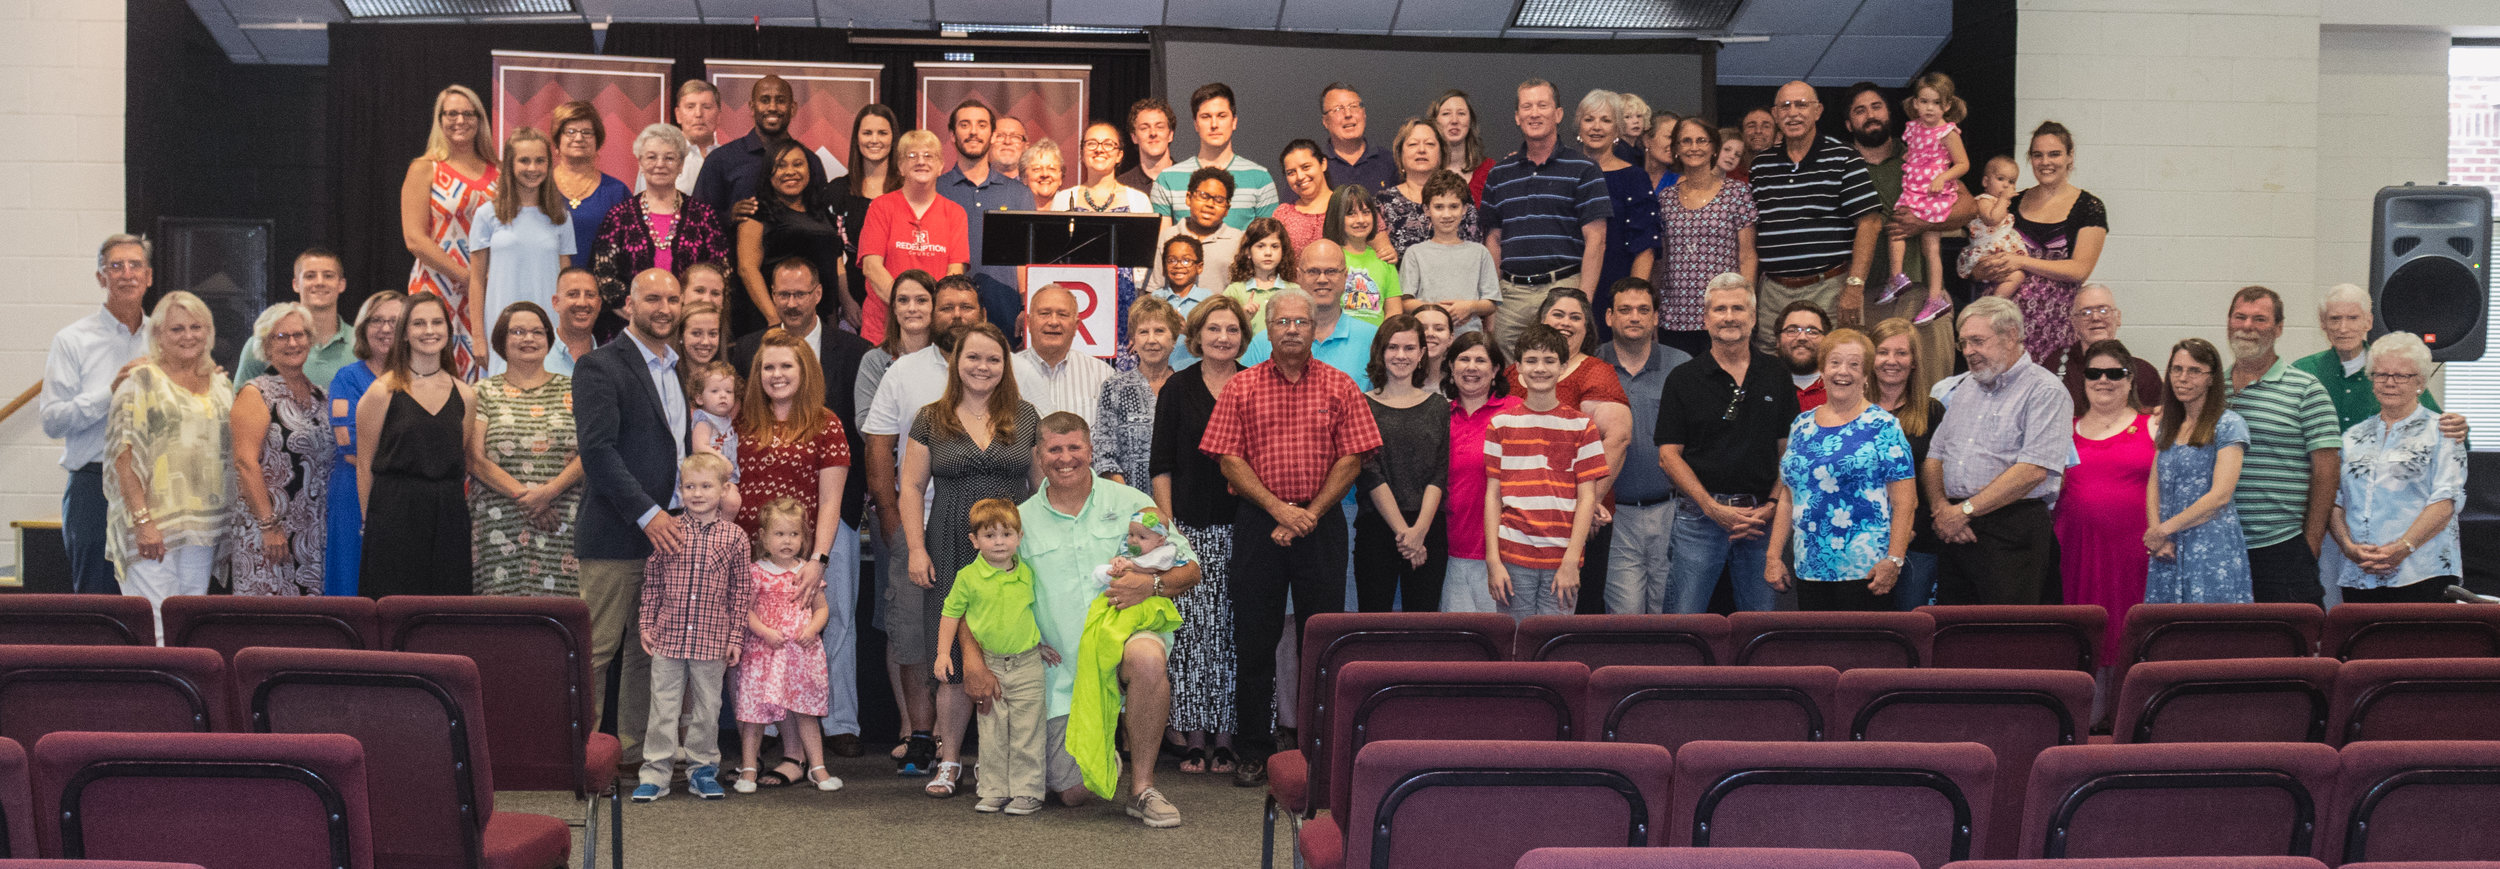 The Founding Members of Redemption Church